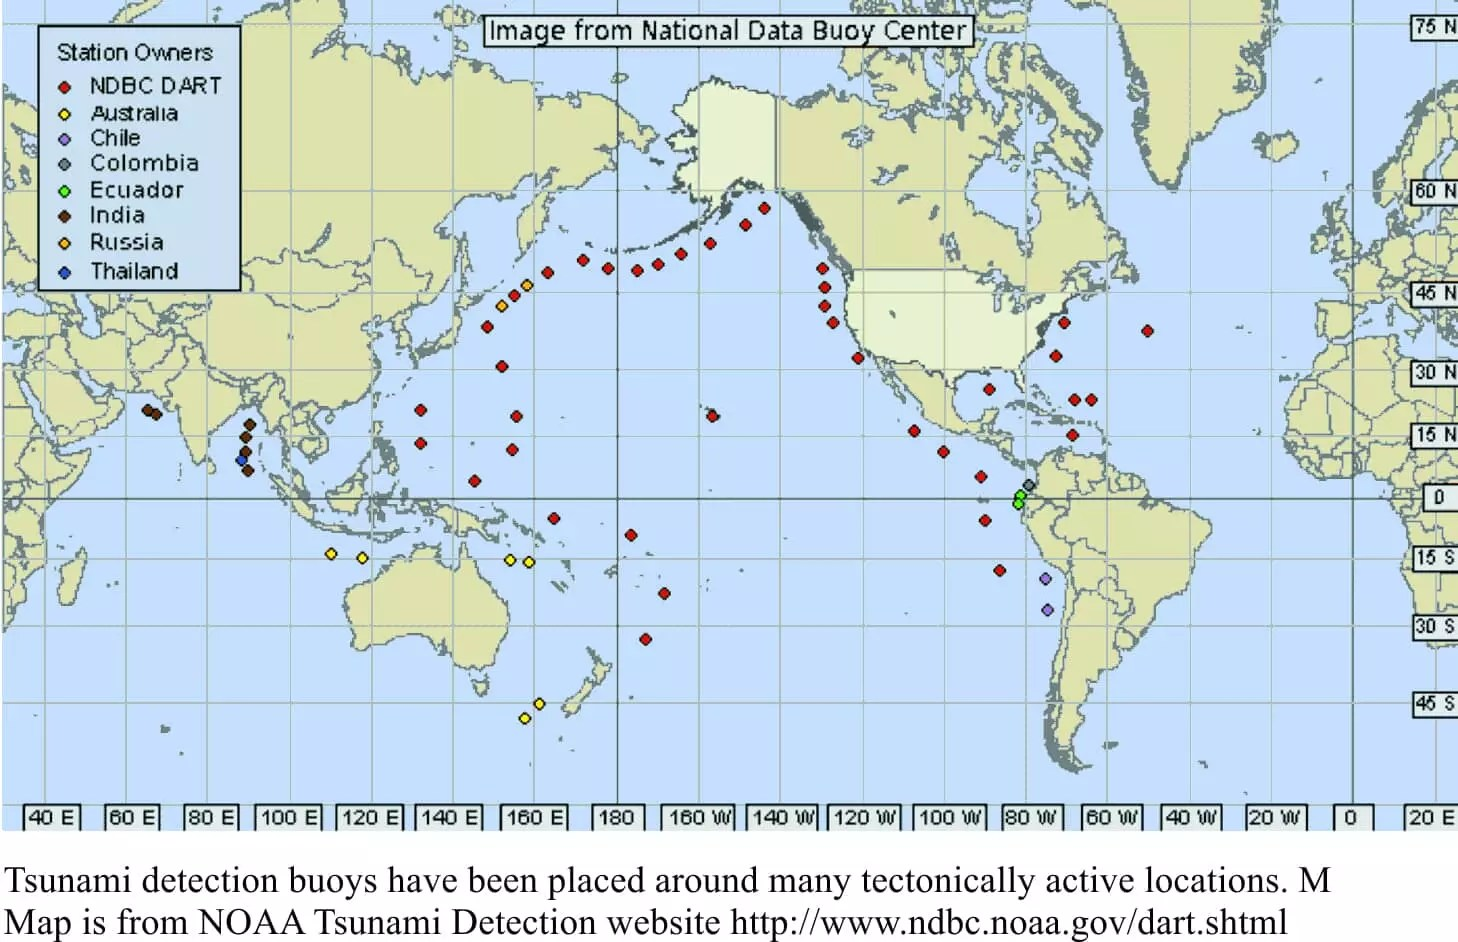 Tsunamis behave as shallow water waves geological digressions such as the west coasts of north and south america the aleutian arc and other volcanic arcs subduction zones from japan through to new zealand gumiabroncs Image collections